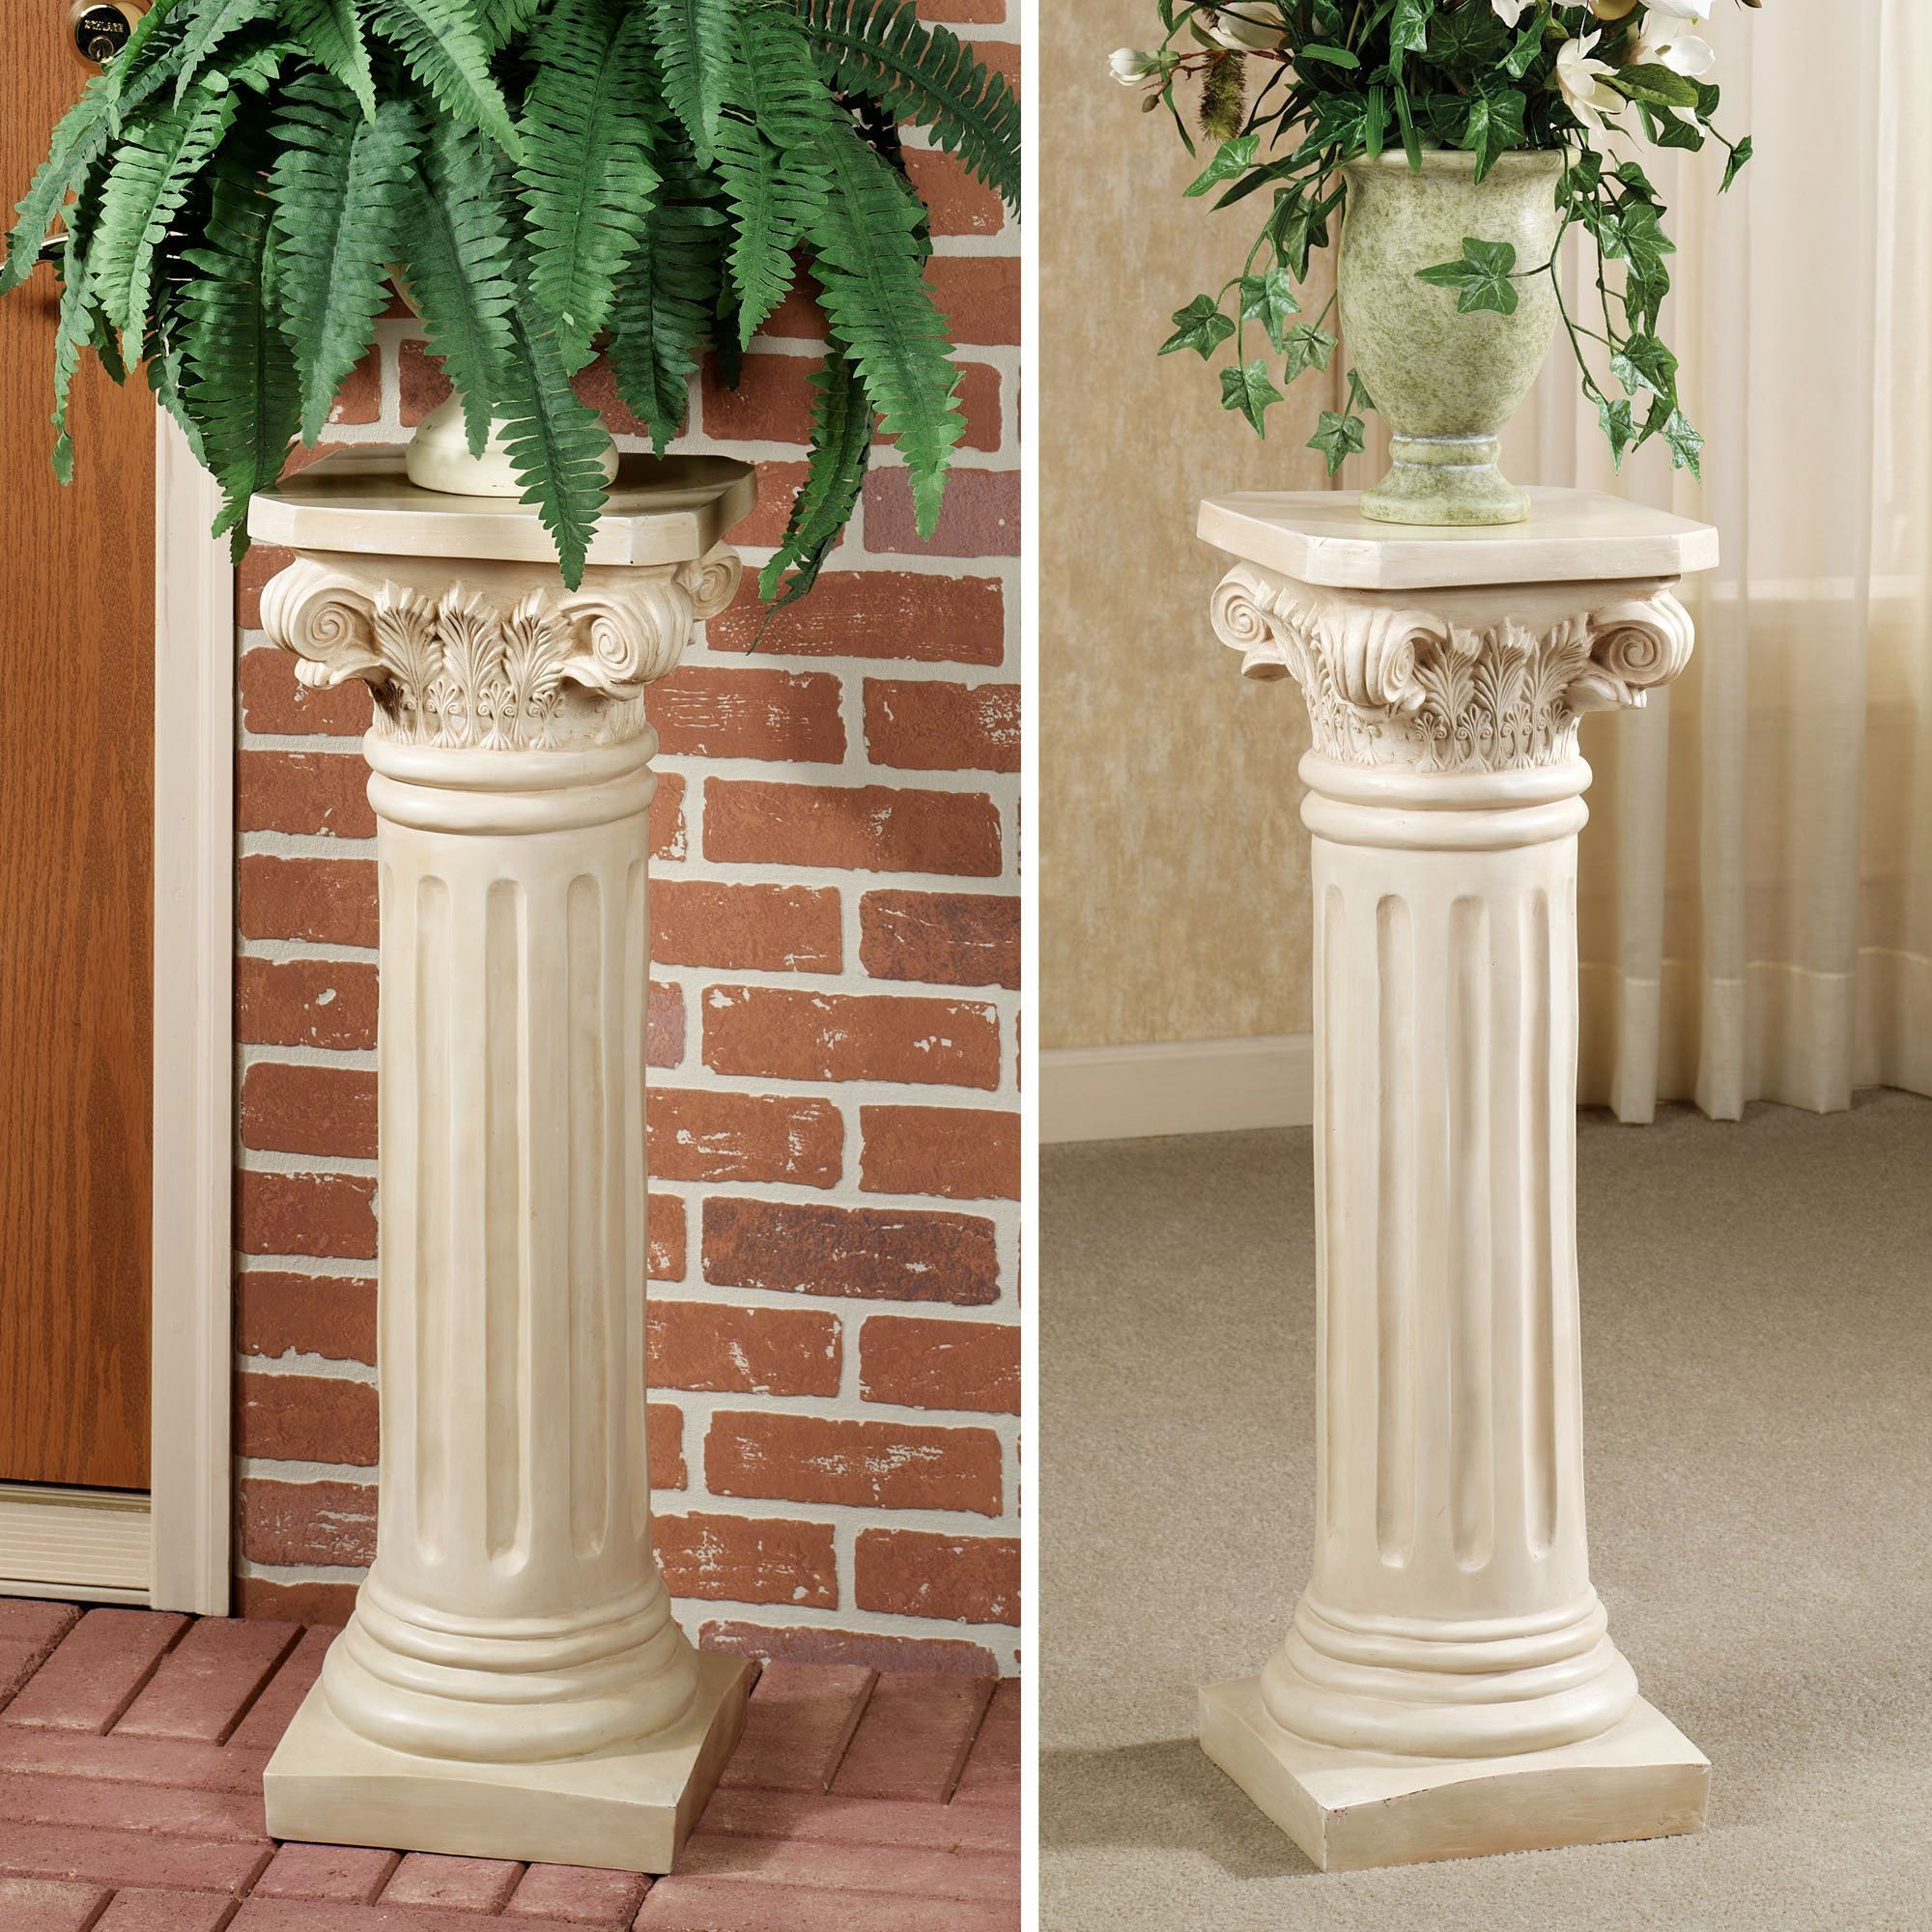 Classic Roman Column Pedestal Ideas For The House